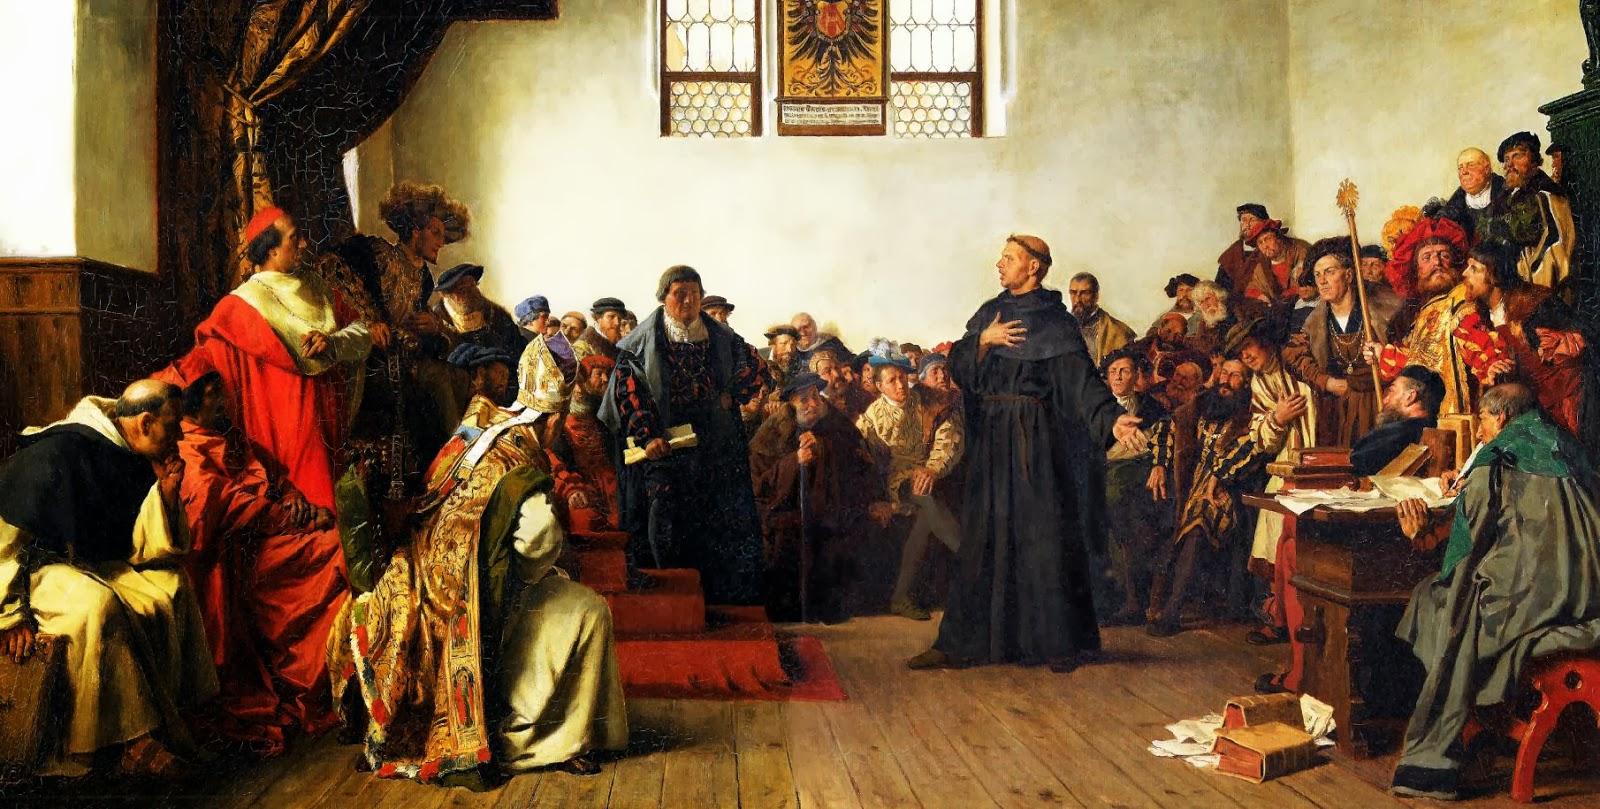 The Diet of Worms 1521: Luther Squares Off with the Emperor